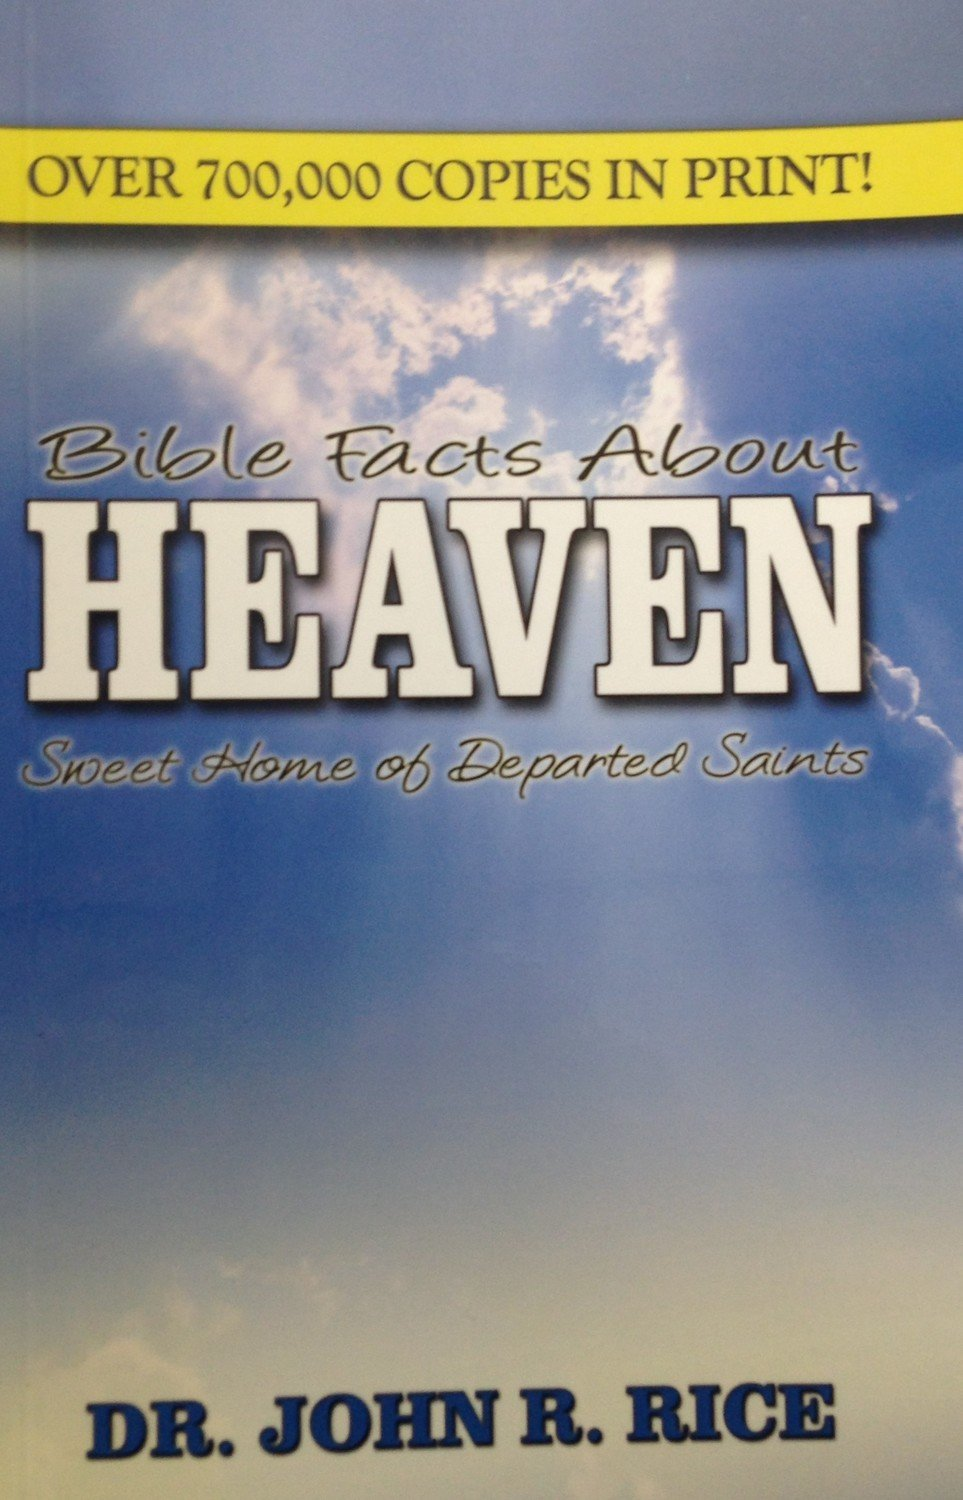 Bible Facts About Heaven:  Sweet Home of the Departed Saints by Dr. John R. Rice